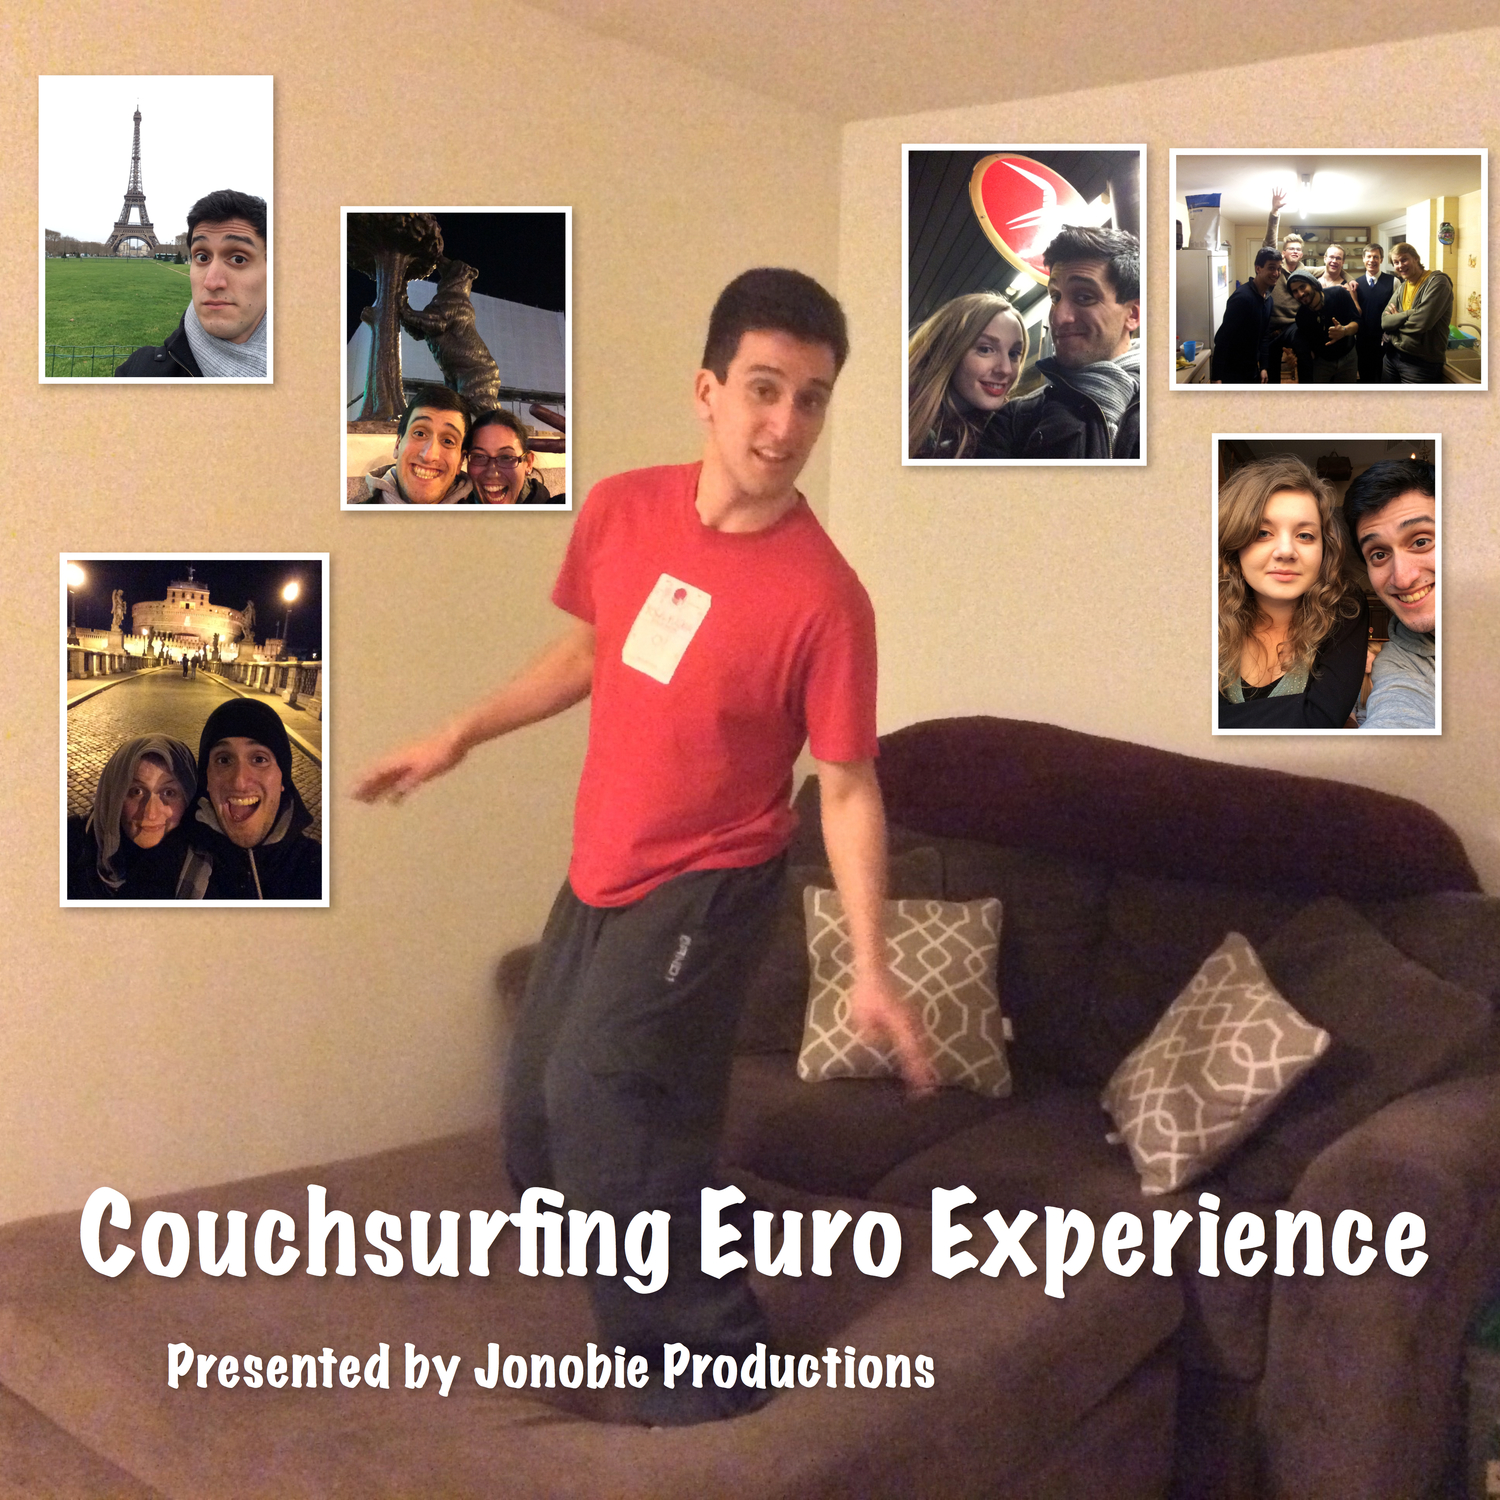 Couchsurfing Euro Experience - Jonobie Productions